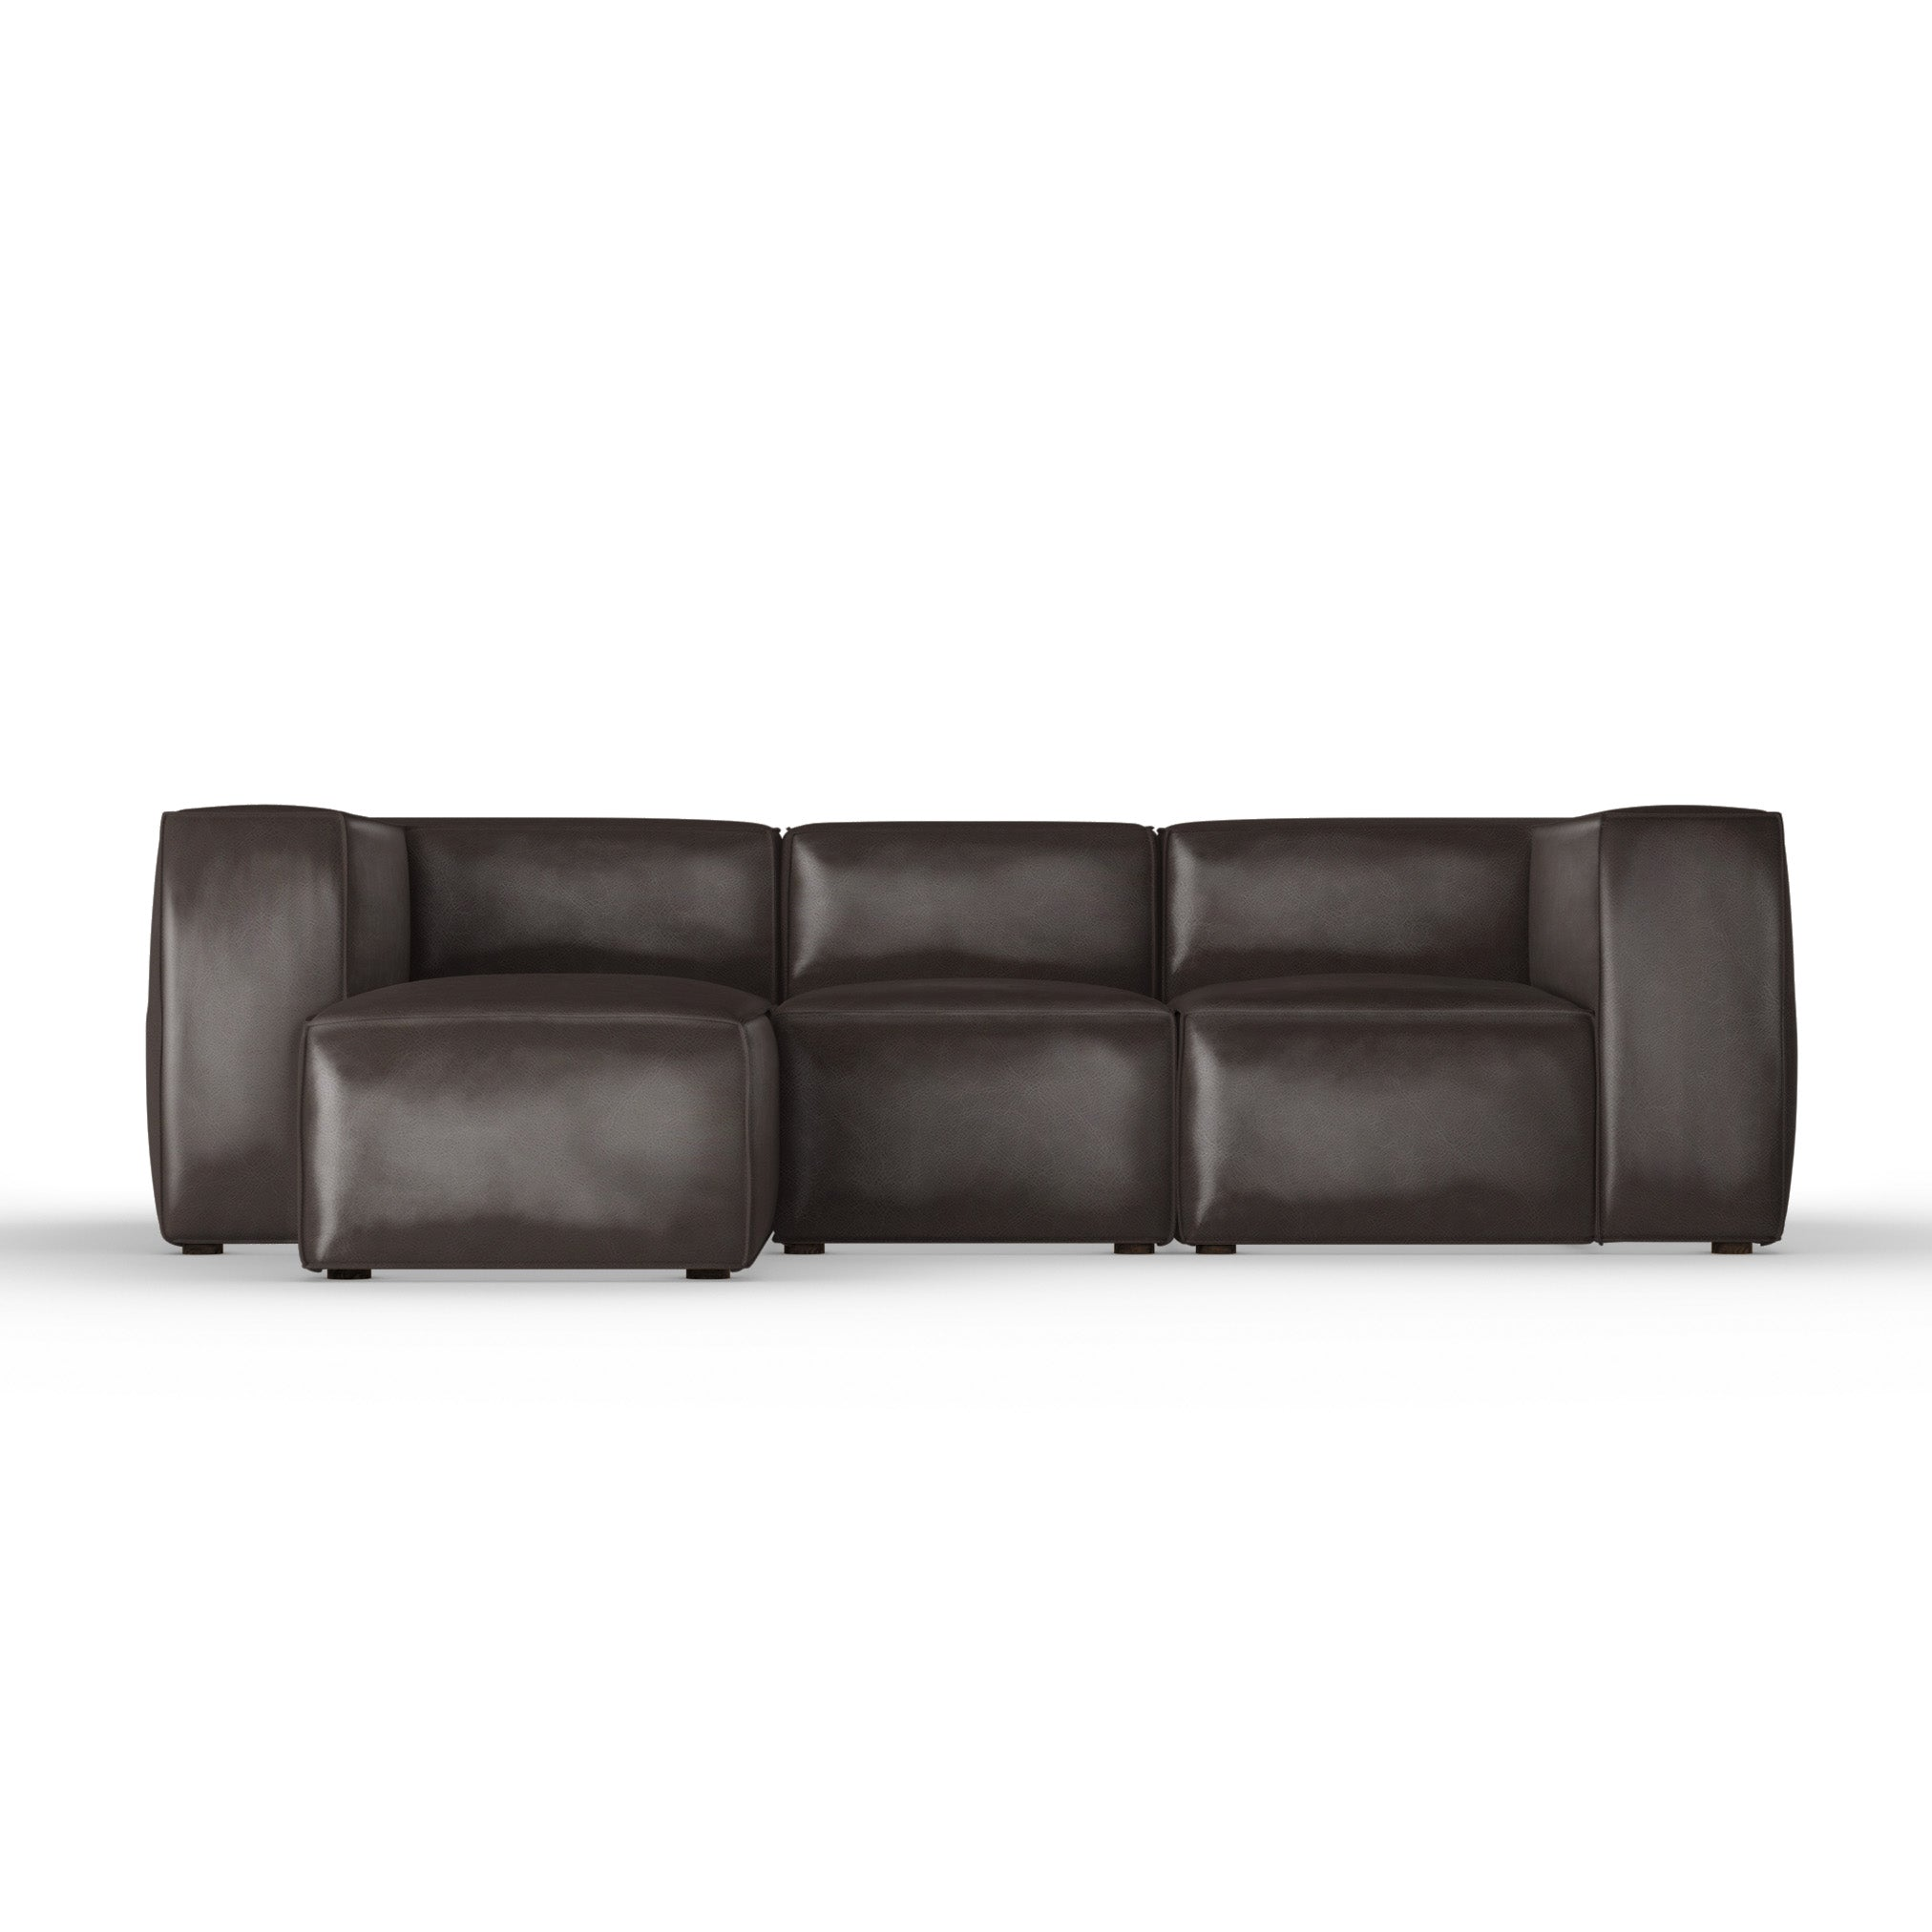 Varick Left-Chaise Sectional - Chocolate Vintage Leather